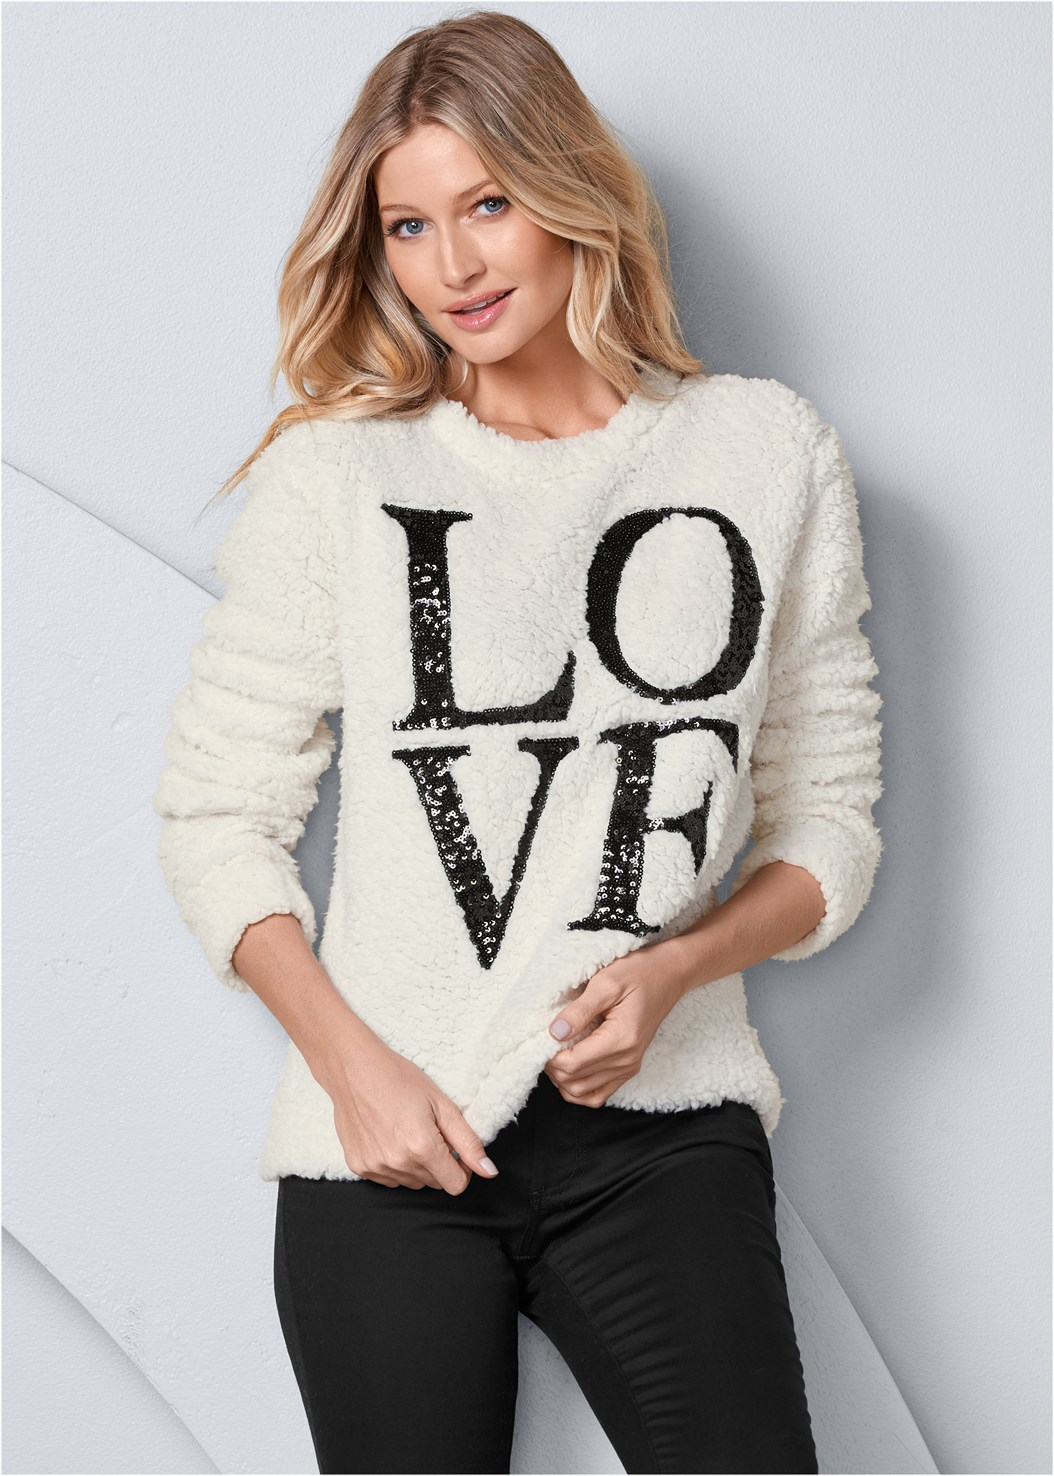 Love Cozy Sweatshirt,Mid Rise Color Skinny Jeans